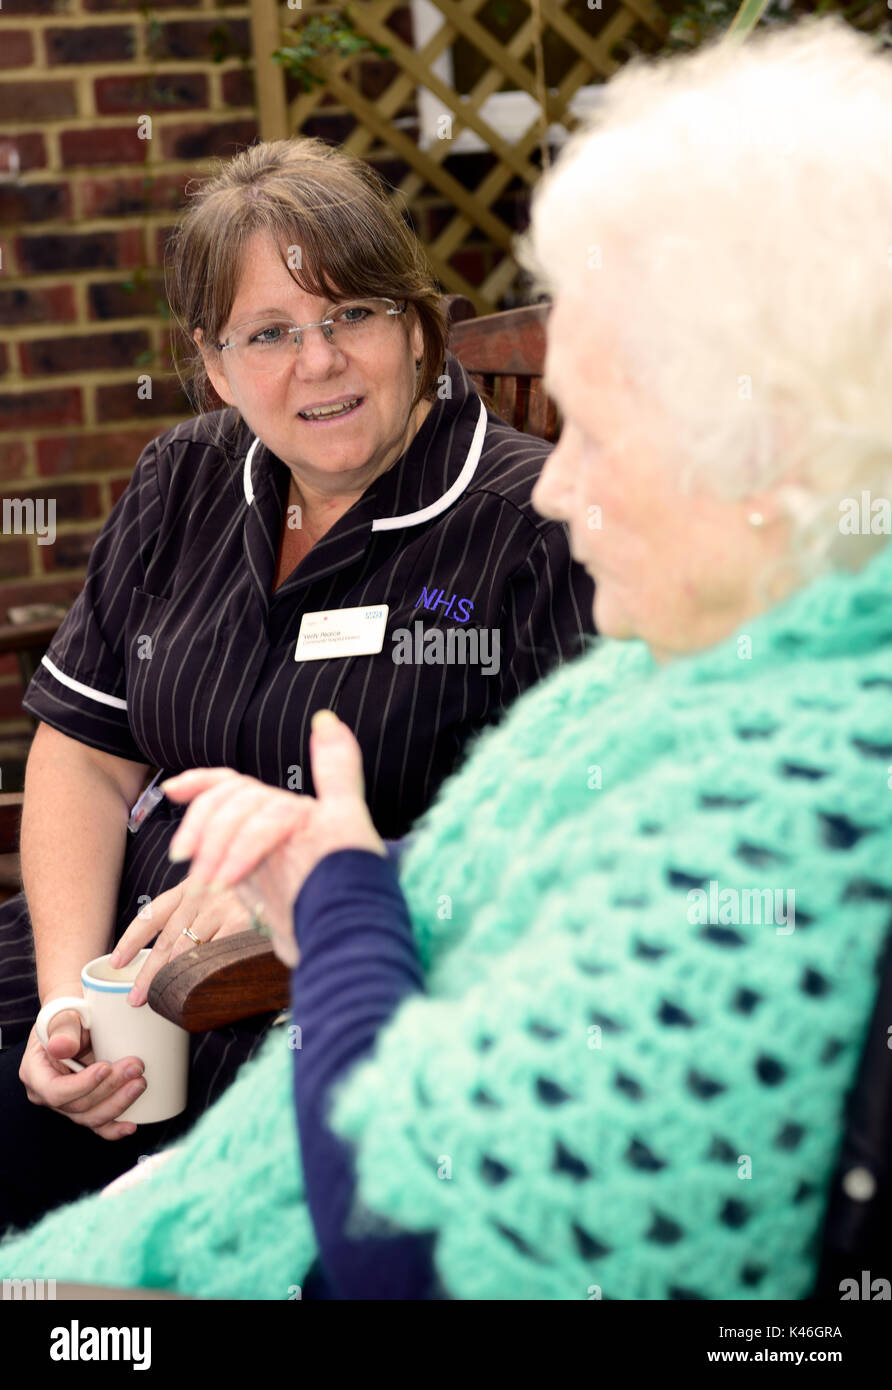 Community Hospital Matron having tea and a chat with elderly patient in hospital garden, Haslemere, Surrey, UK. 01.09.2017. - Stock Image